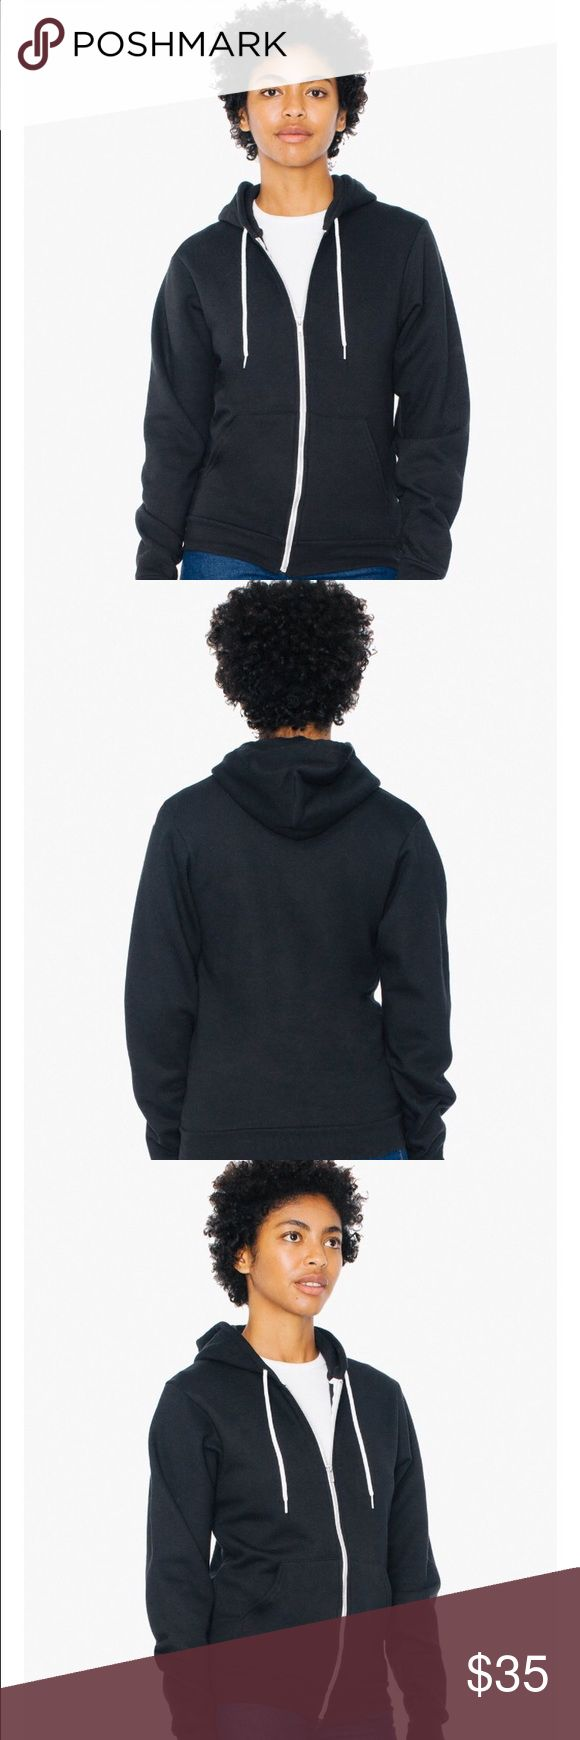 """Unisex Flex Fleece Zip Hoodie Best Seller. A fitted unisex zip-up hoodie with kangaroo pocket and drawstring hood. Constructed from our extra soft and durable Flex Fleece. • Flex Fleece (50% Polyester / 50% Cotton Fleece) construction • Medium is approximately 23 3/4 (60.32cm) in total length • Metal zipper • Hooded with White finished Polyester drawcord • Kangaroo pocket • True to size • Unisex size – women may prefer to order one size down. Model is 5'9"""" and wearing a size S. American…"""